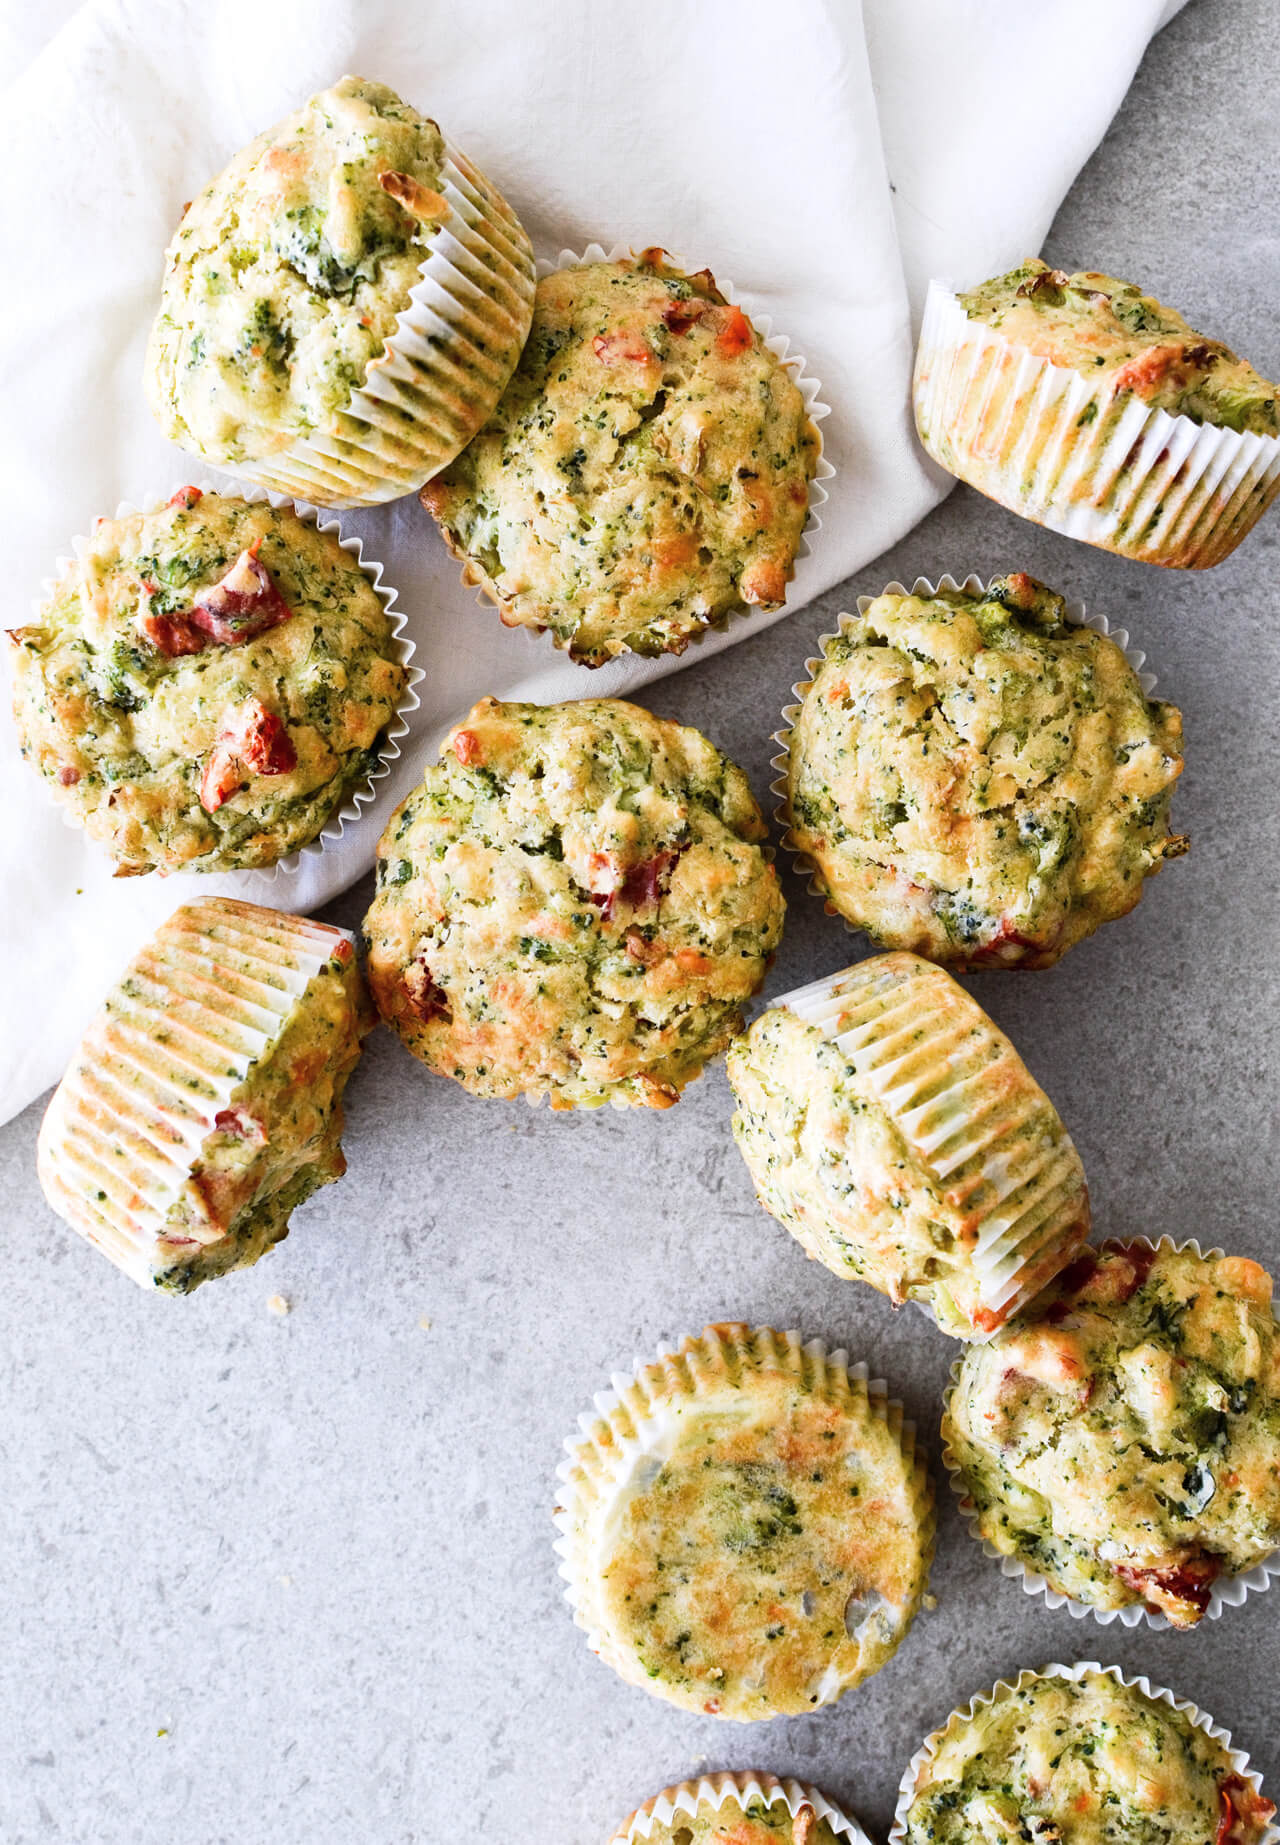 Olive oil broccoli muffins with cabbage and sun-dried tomatoes make the perfect breakfast on the go, or a side to your lunch salad or dinner meal. Great for kids too!